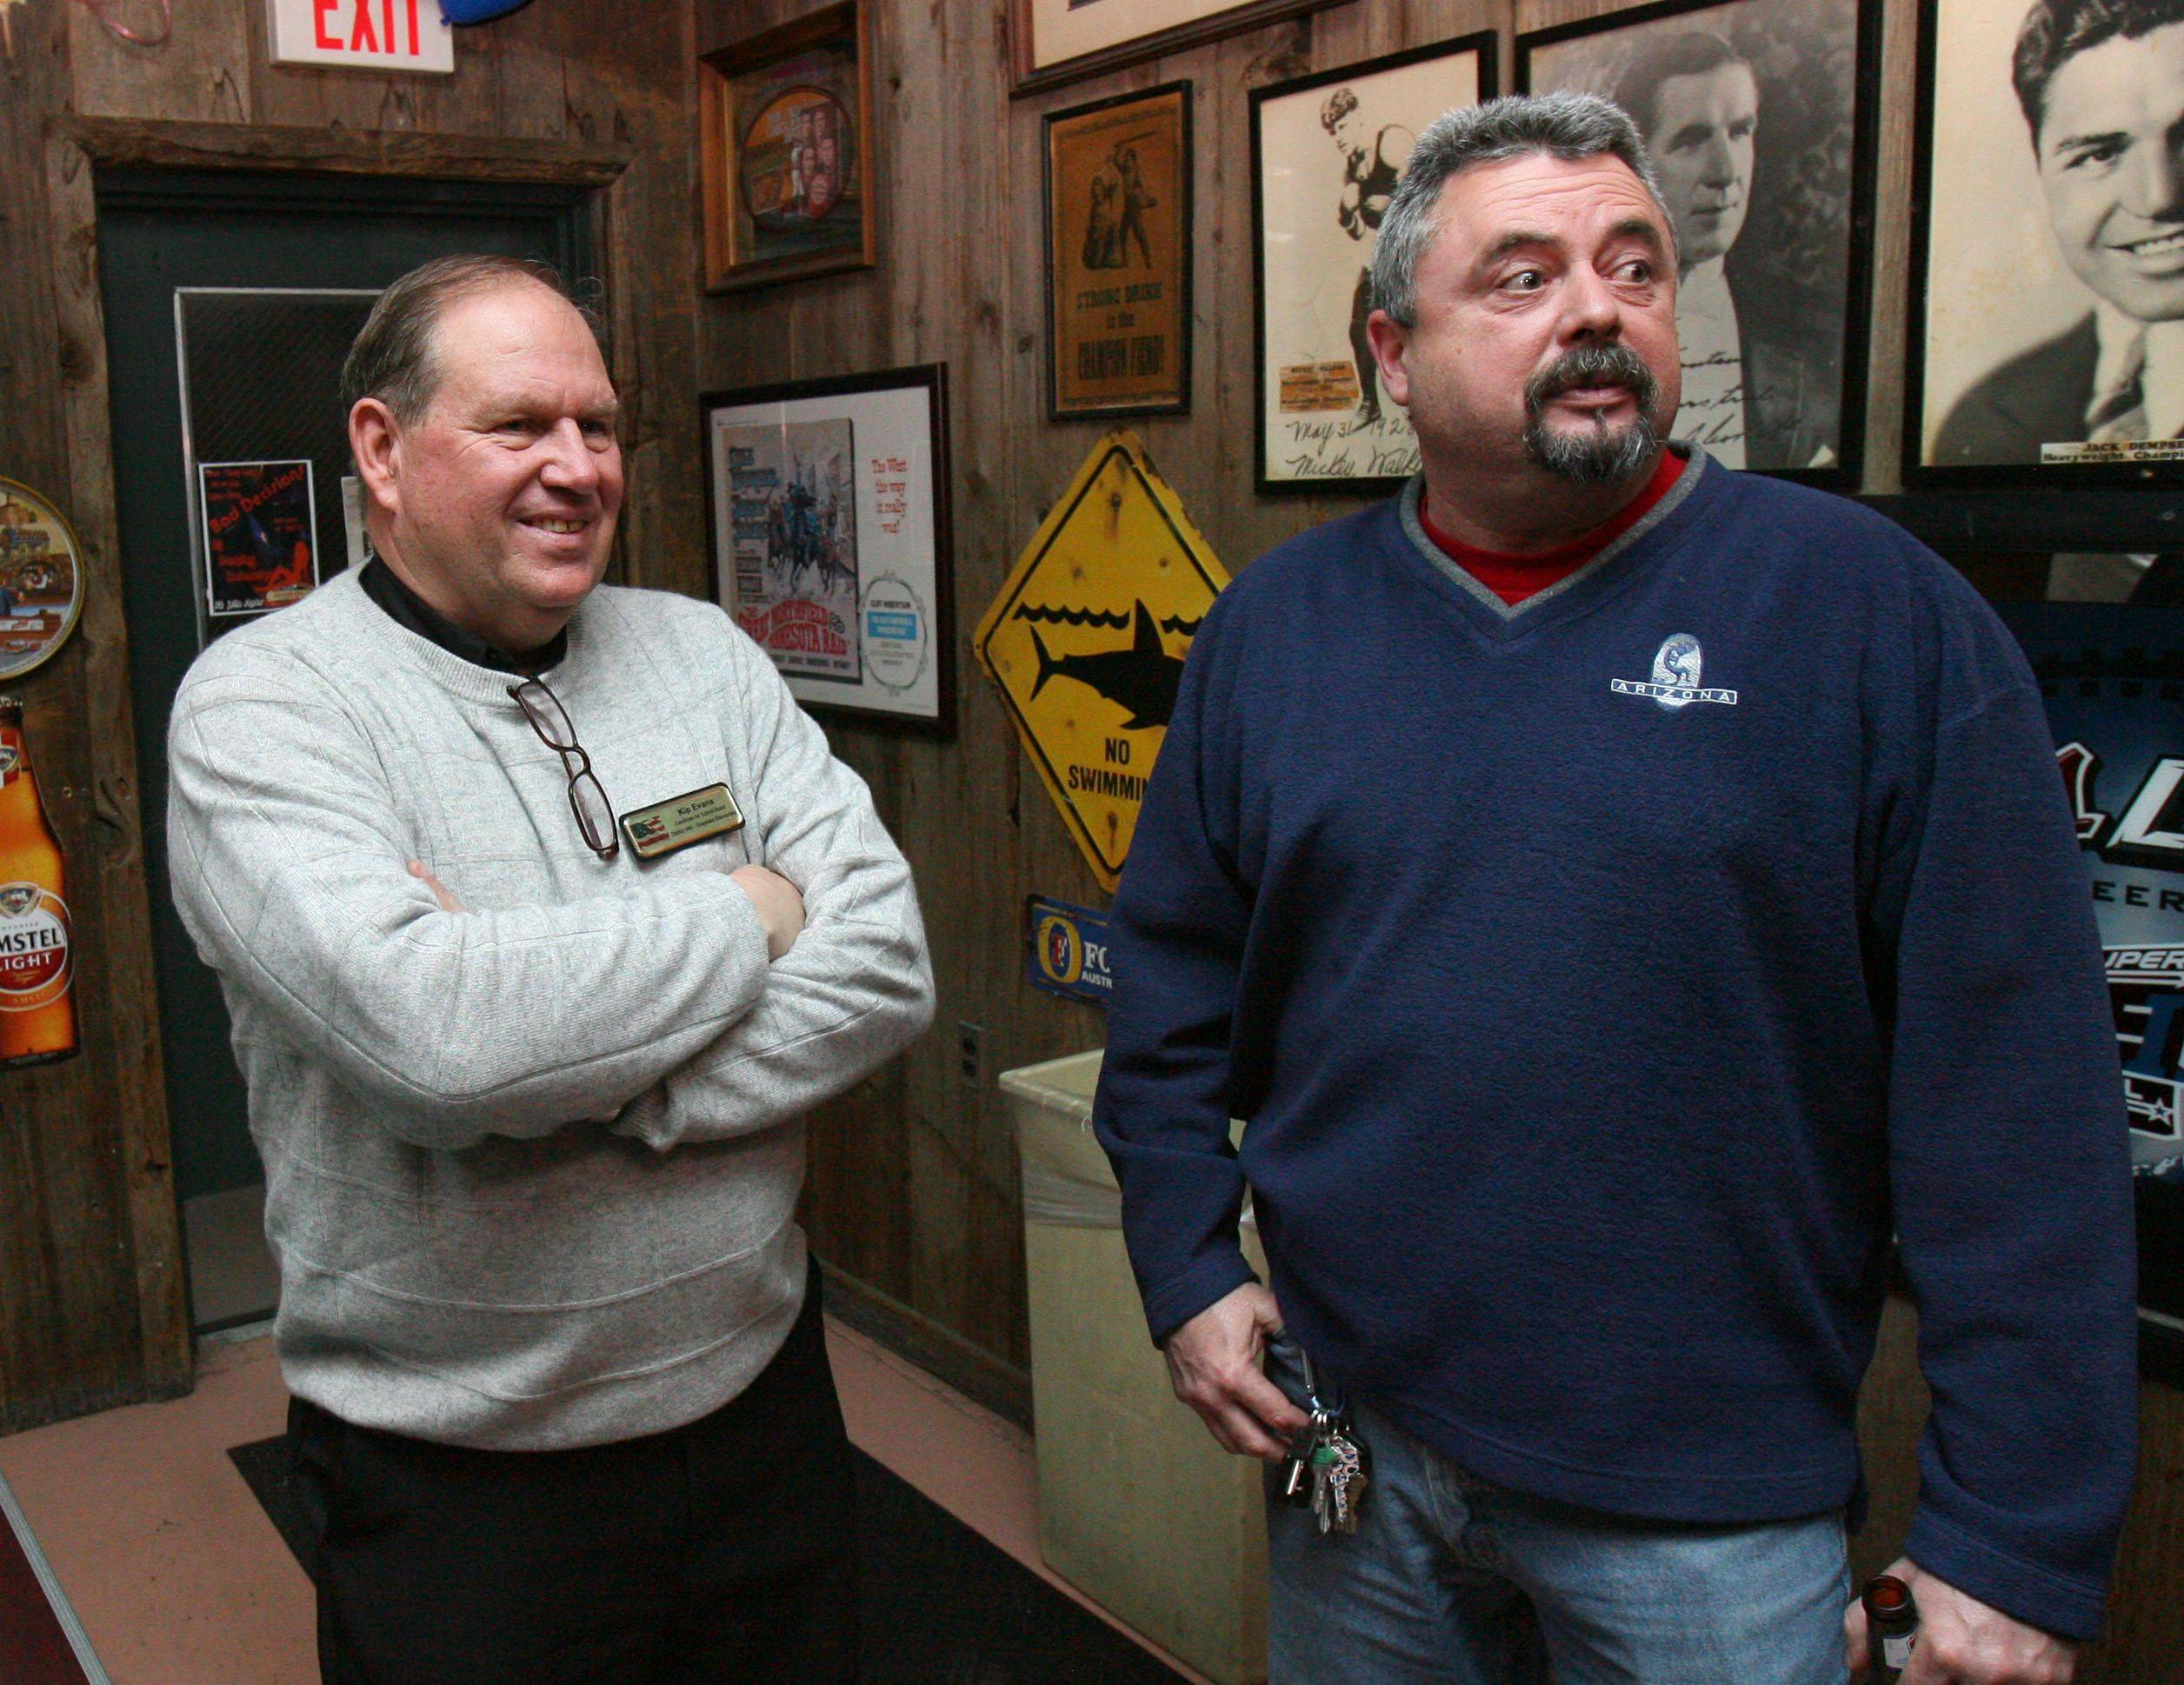 Newly elected Grayslake District 46 school board member Kip Evans, left, talks with Avon Township Highway Commissioner Tom Brust Tuesday night at Last Chance Saloon in Grayslake.